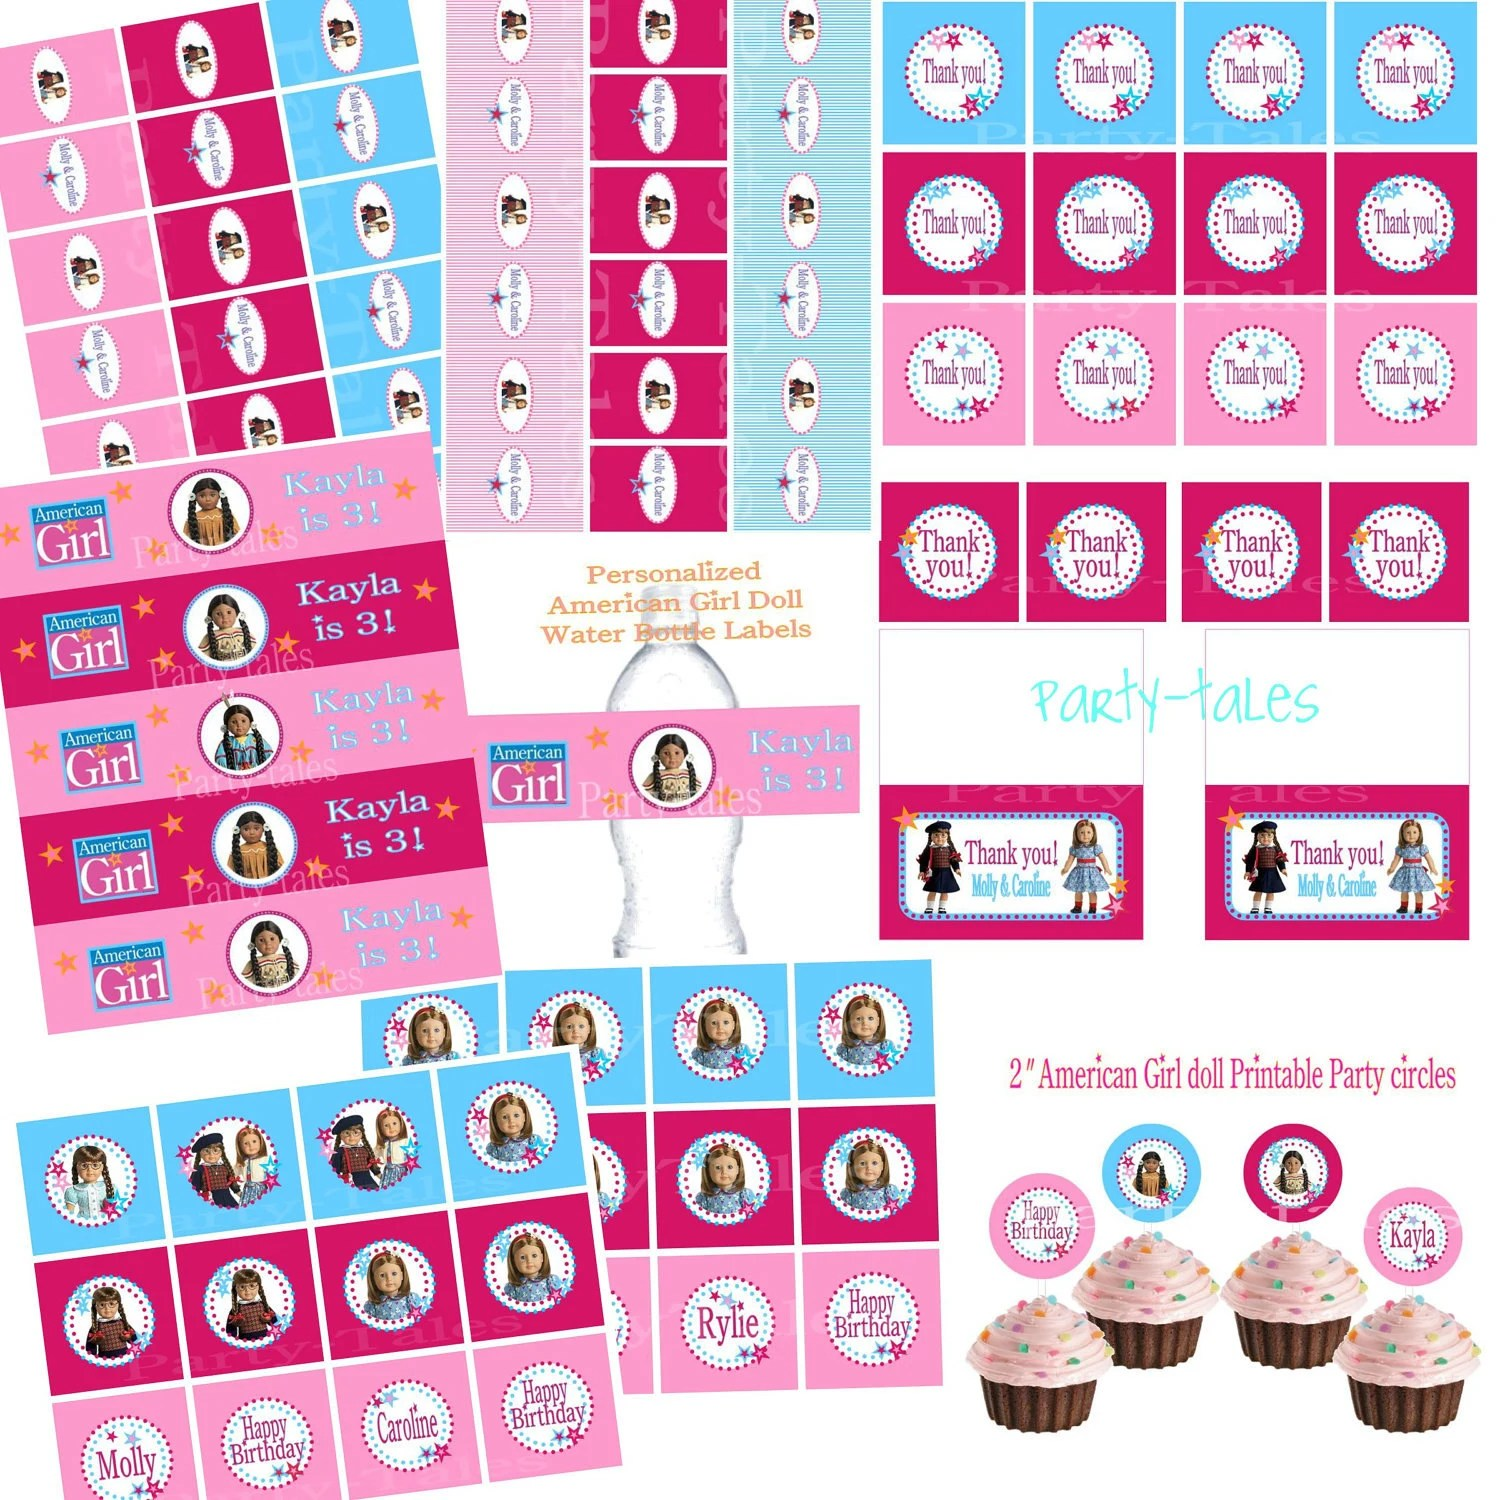 American Girl Doll Printable Birthday Party By Icandyevents